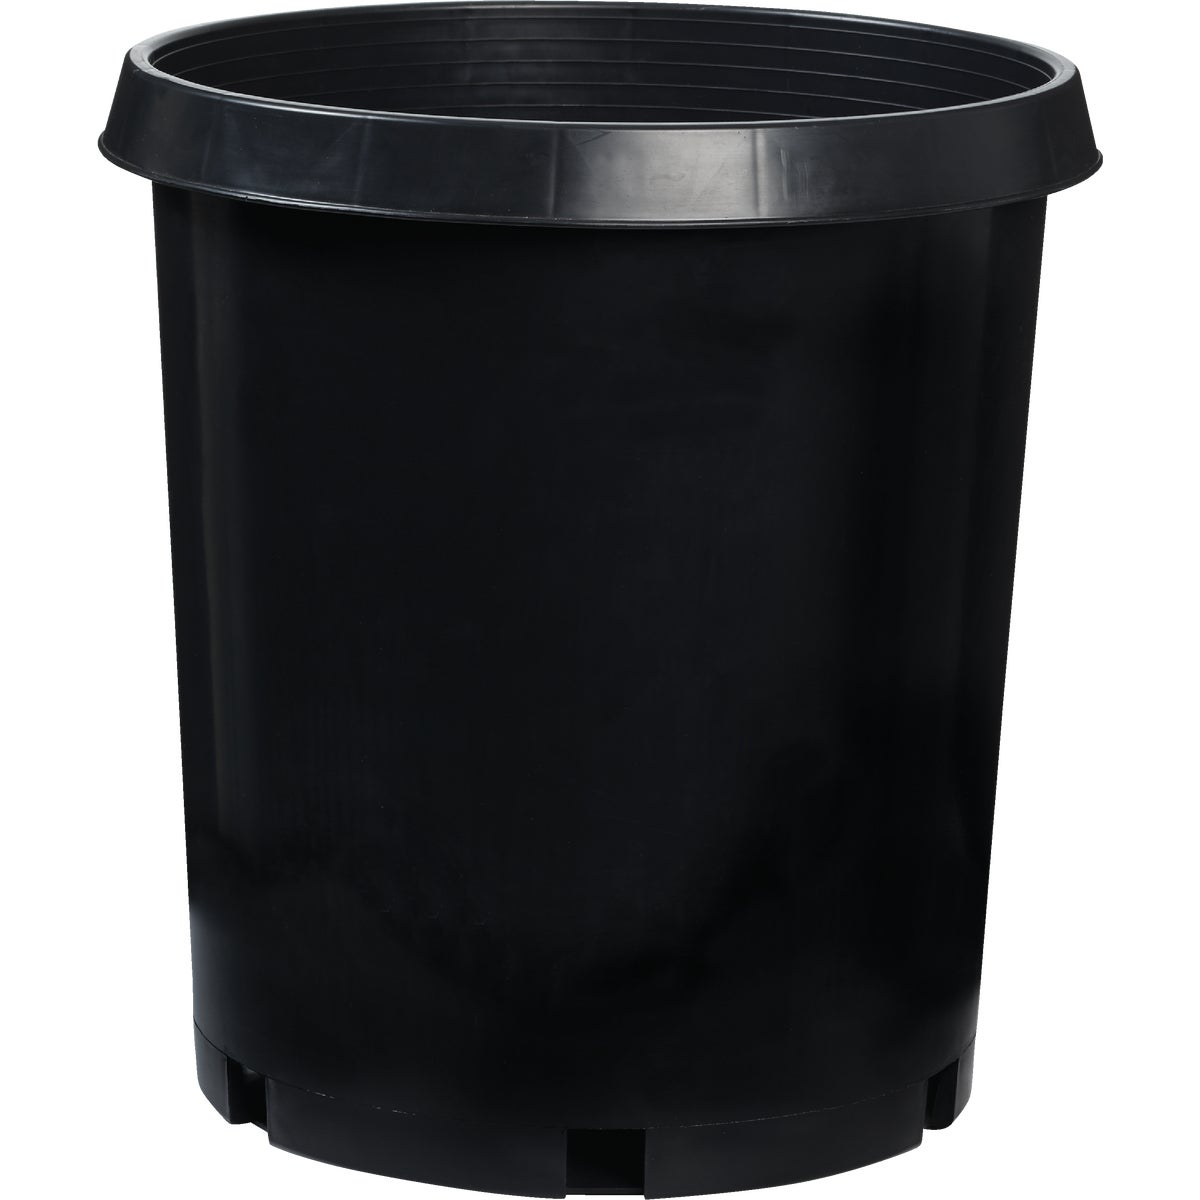 7 GAL BLACK SQUAT POT - NCS07000G18 by Myers Industries Inc